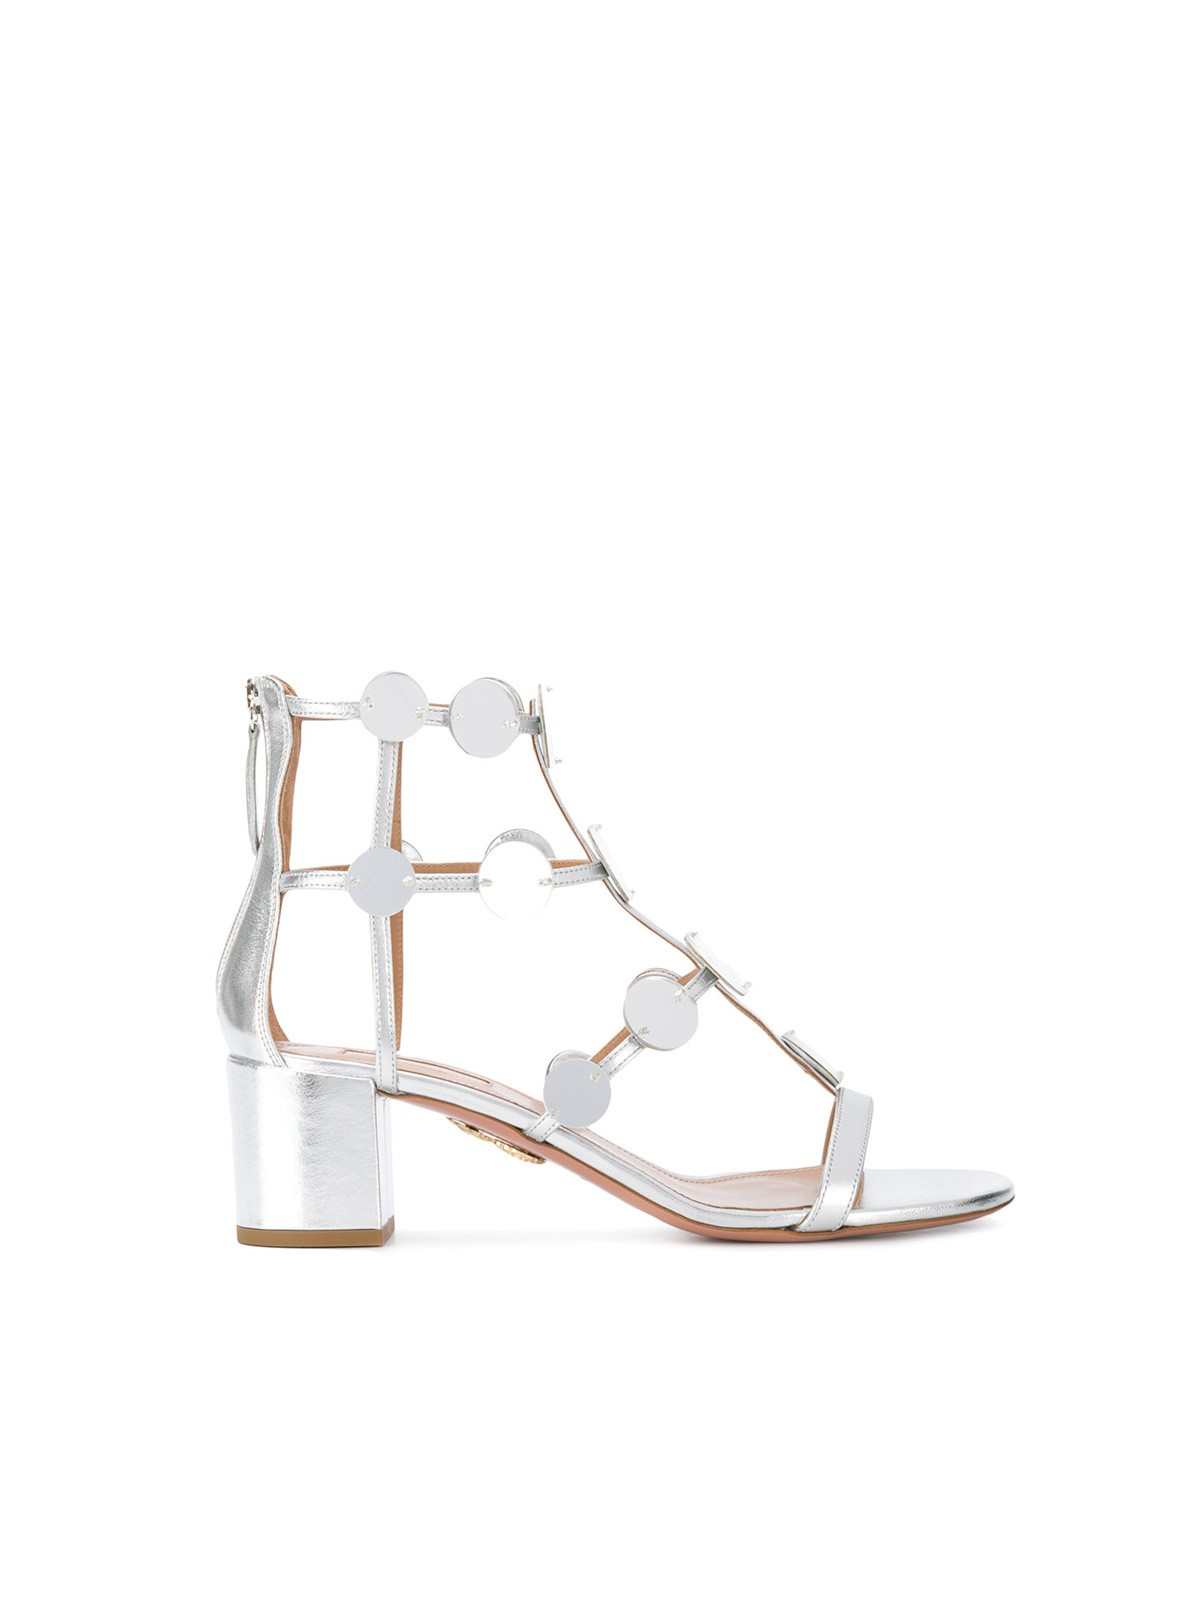 75e5d12913f7 aquazzura INDIAN MOON SANDALS available on montiboutique.com - 22366